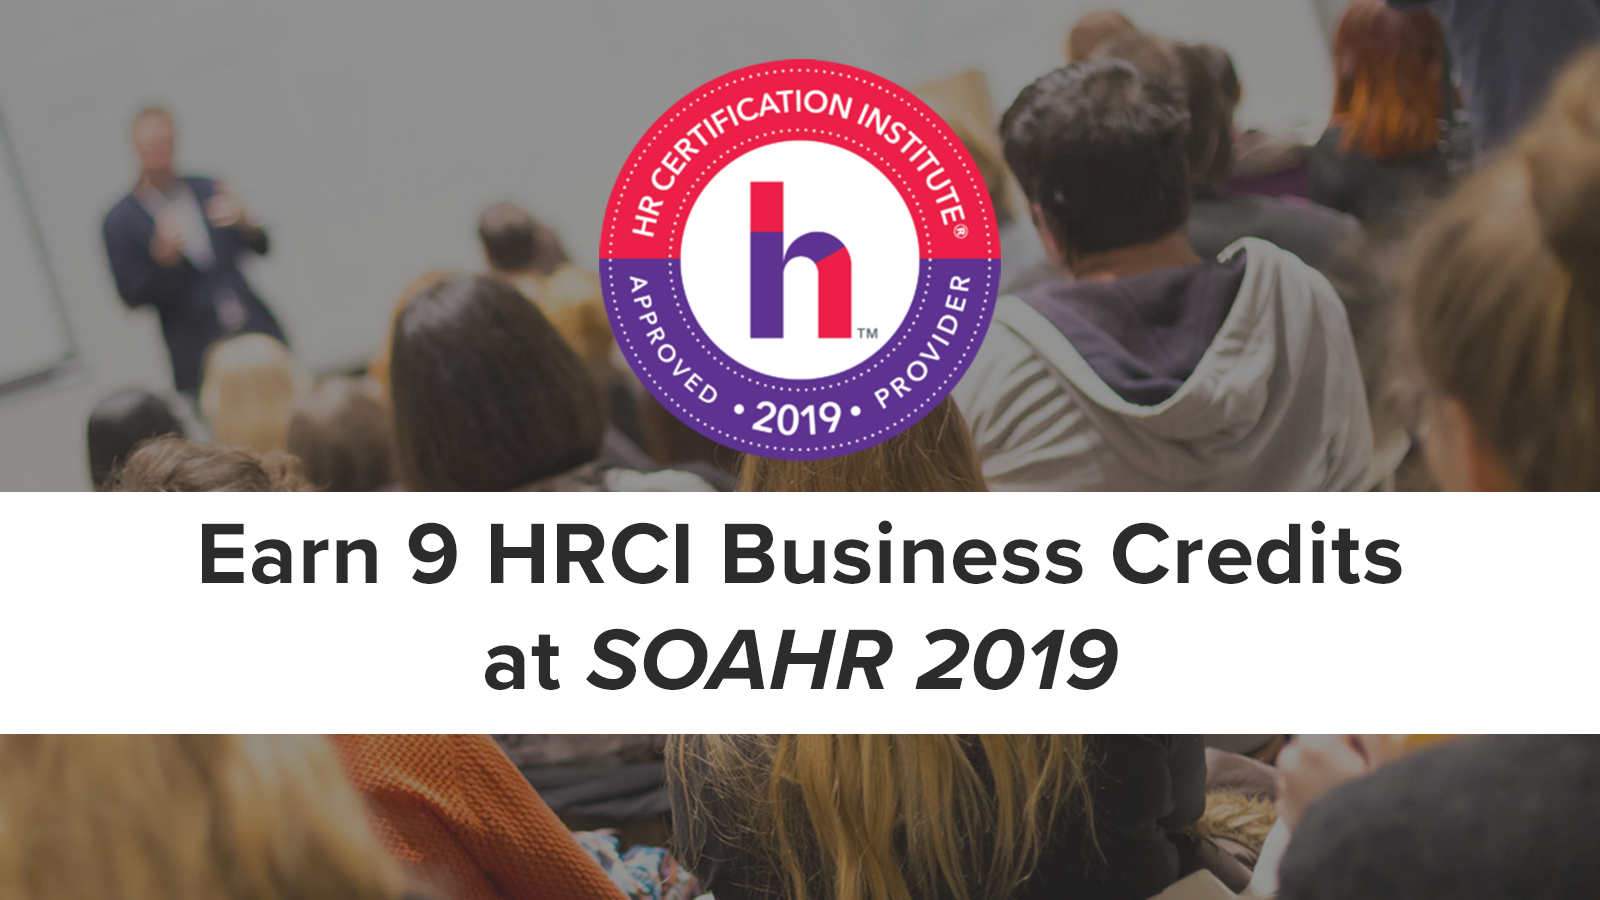 HRCI Business Credits at SOAHR 2019